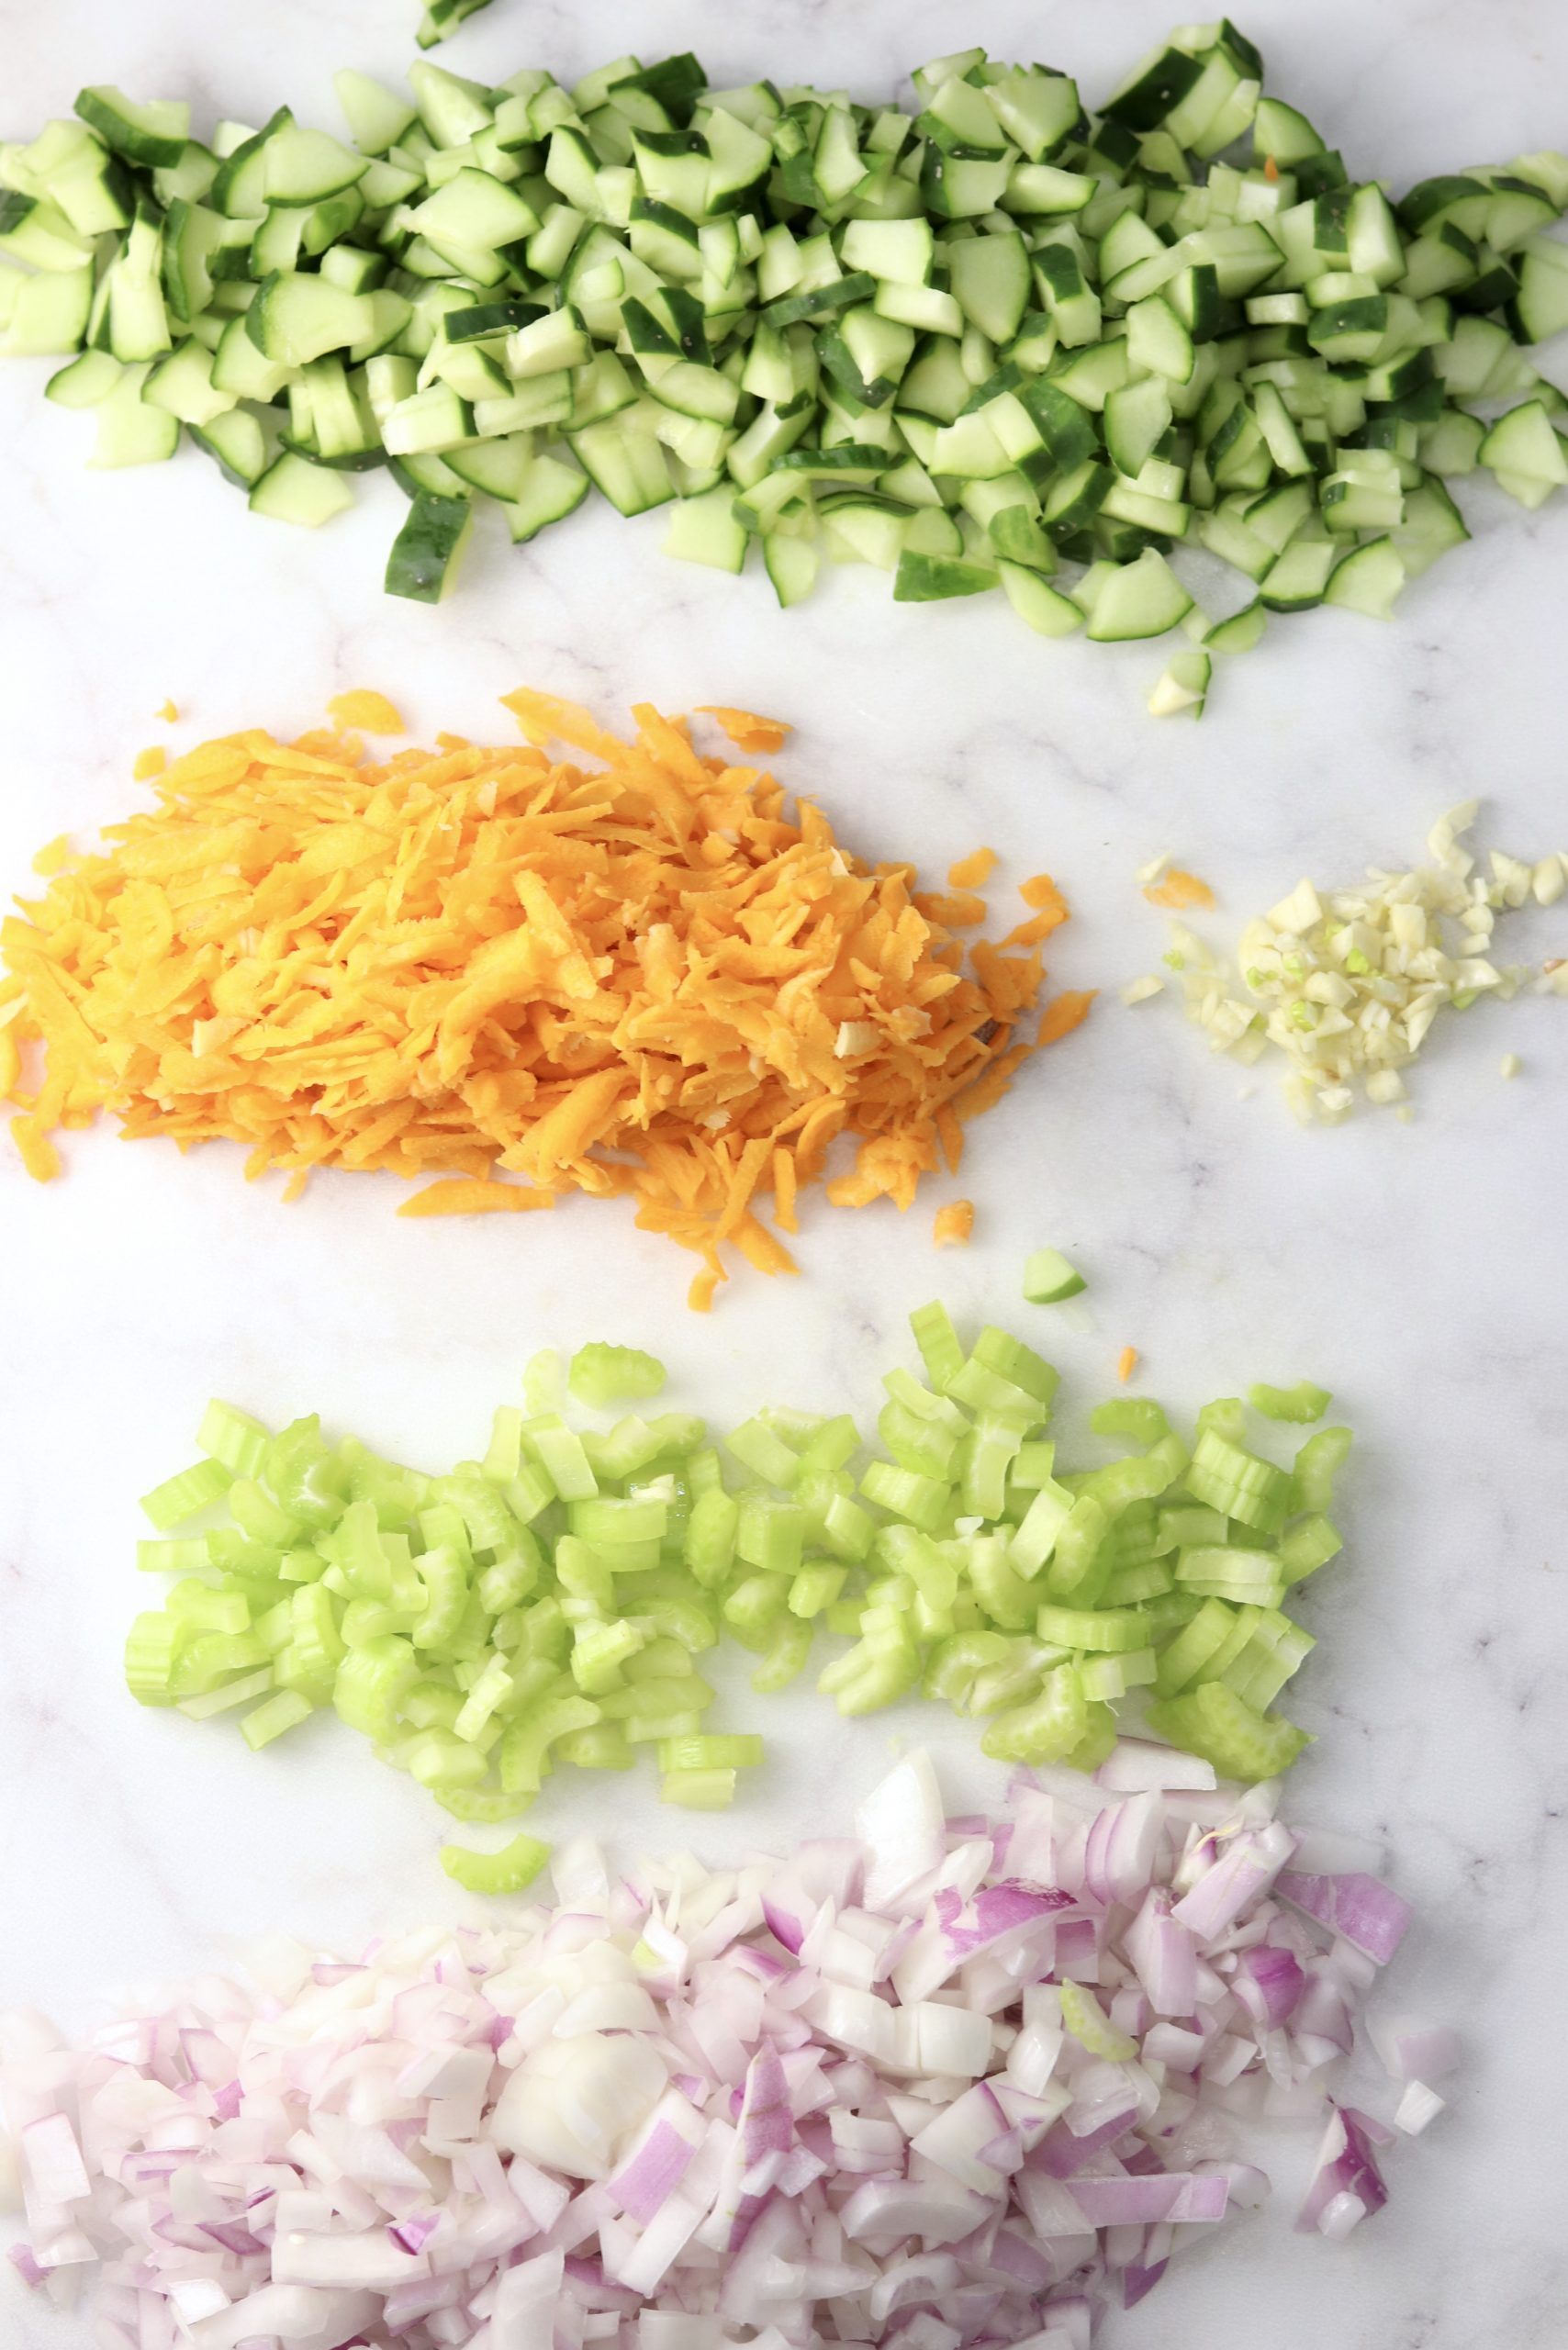 Chopped vegetables, cucumbers, carrots, garlic, celery and red onion